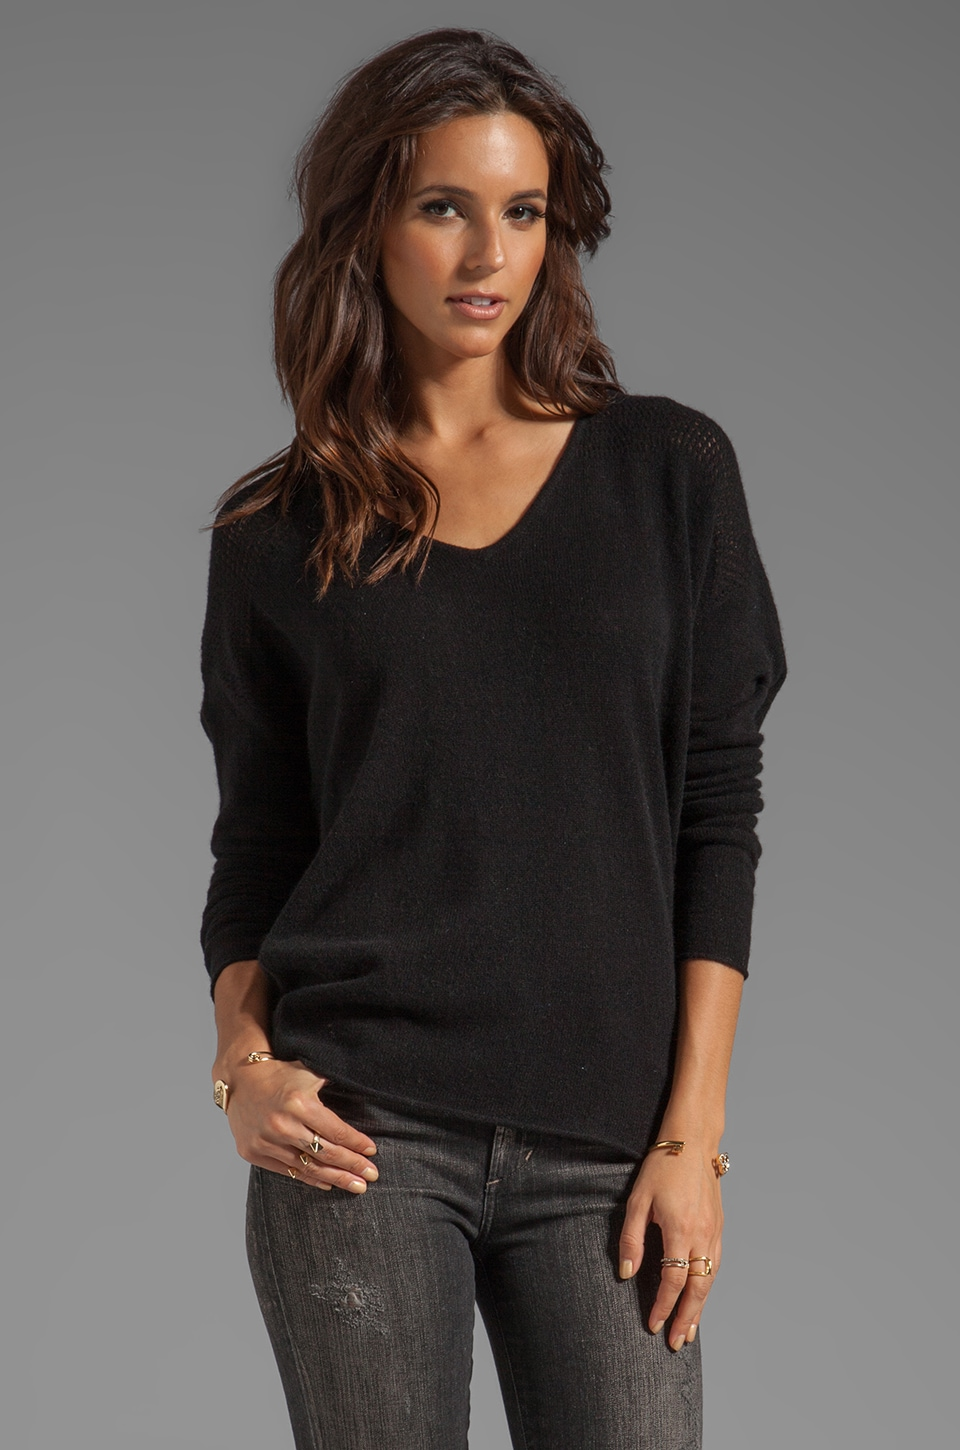 Velvet by Graham & Spencer Clare Cashmere Classic Long Sleeve V-Neck in Black